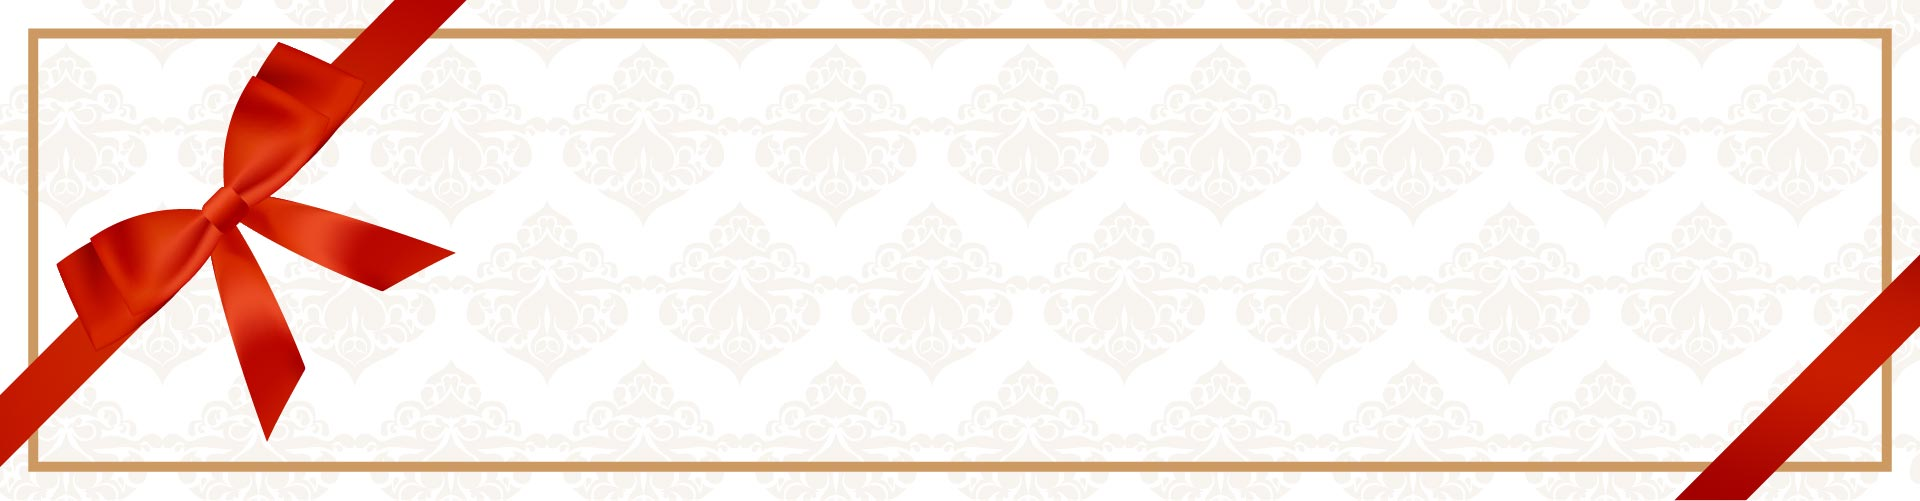 Osteria Pater - Gift Card background